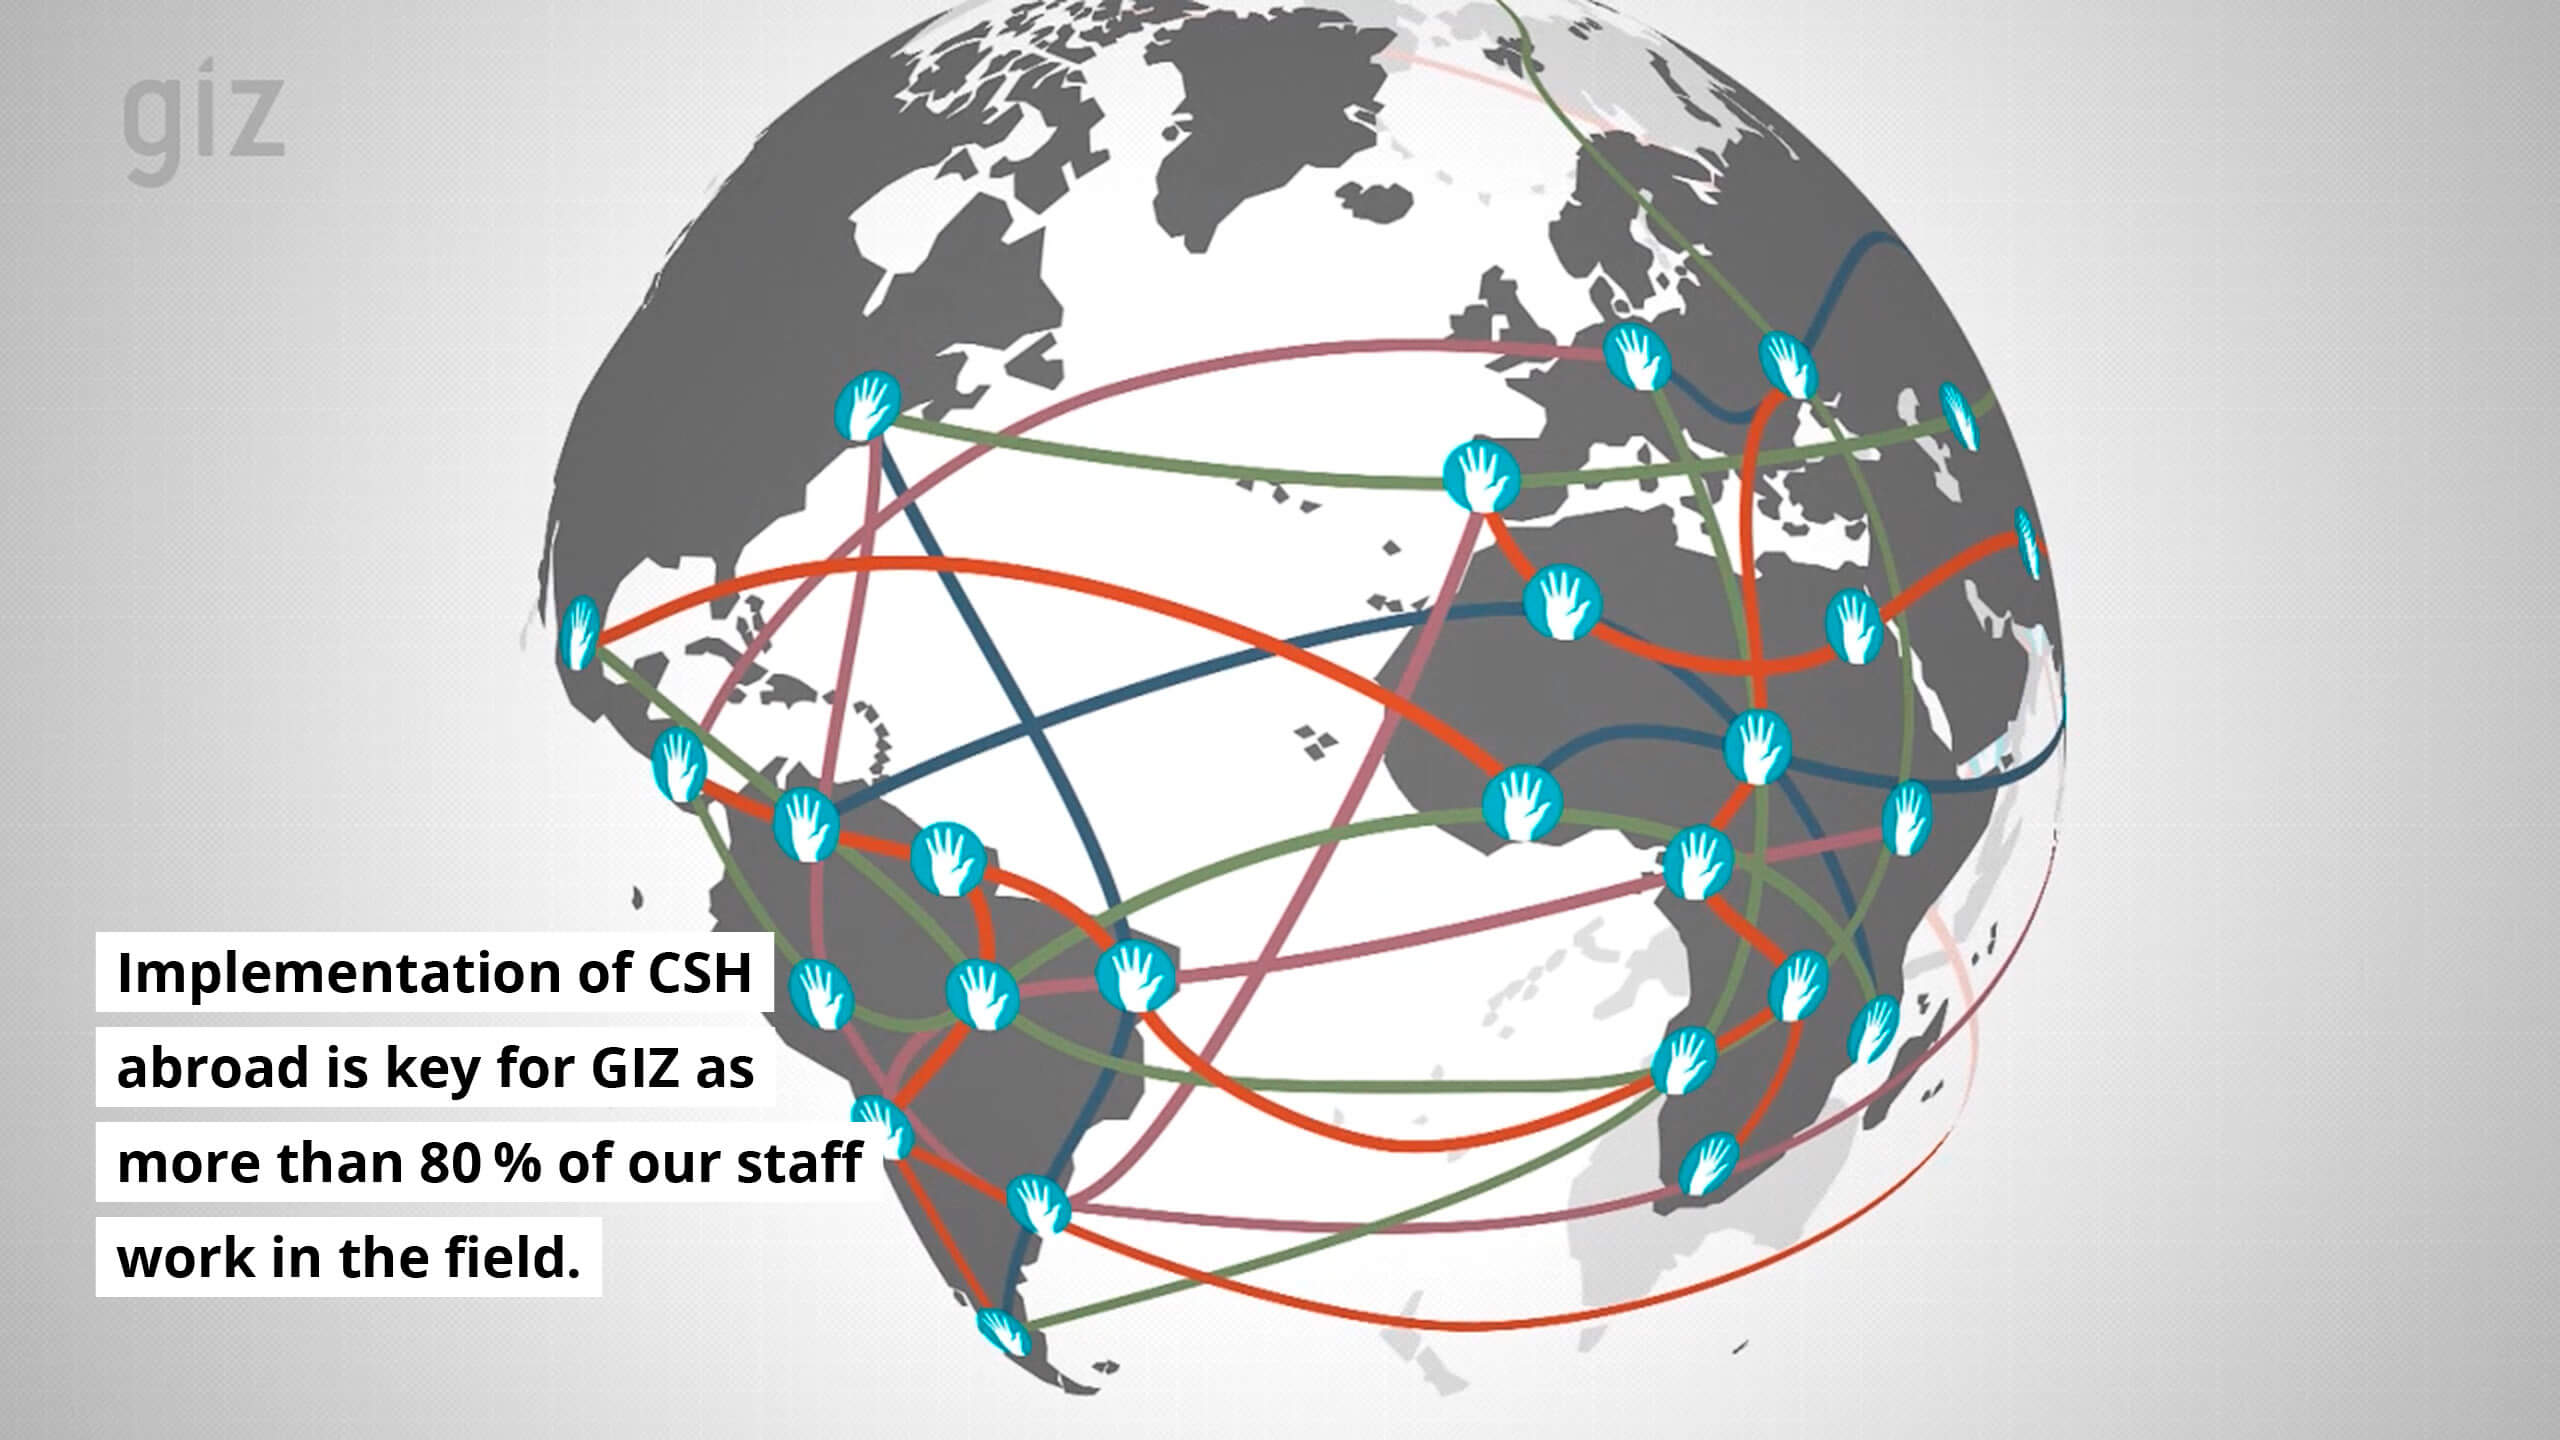 Implementation of CSH abroad is key for GIZ as more than 80% of our staff work in the field.